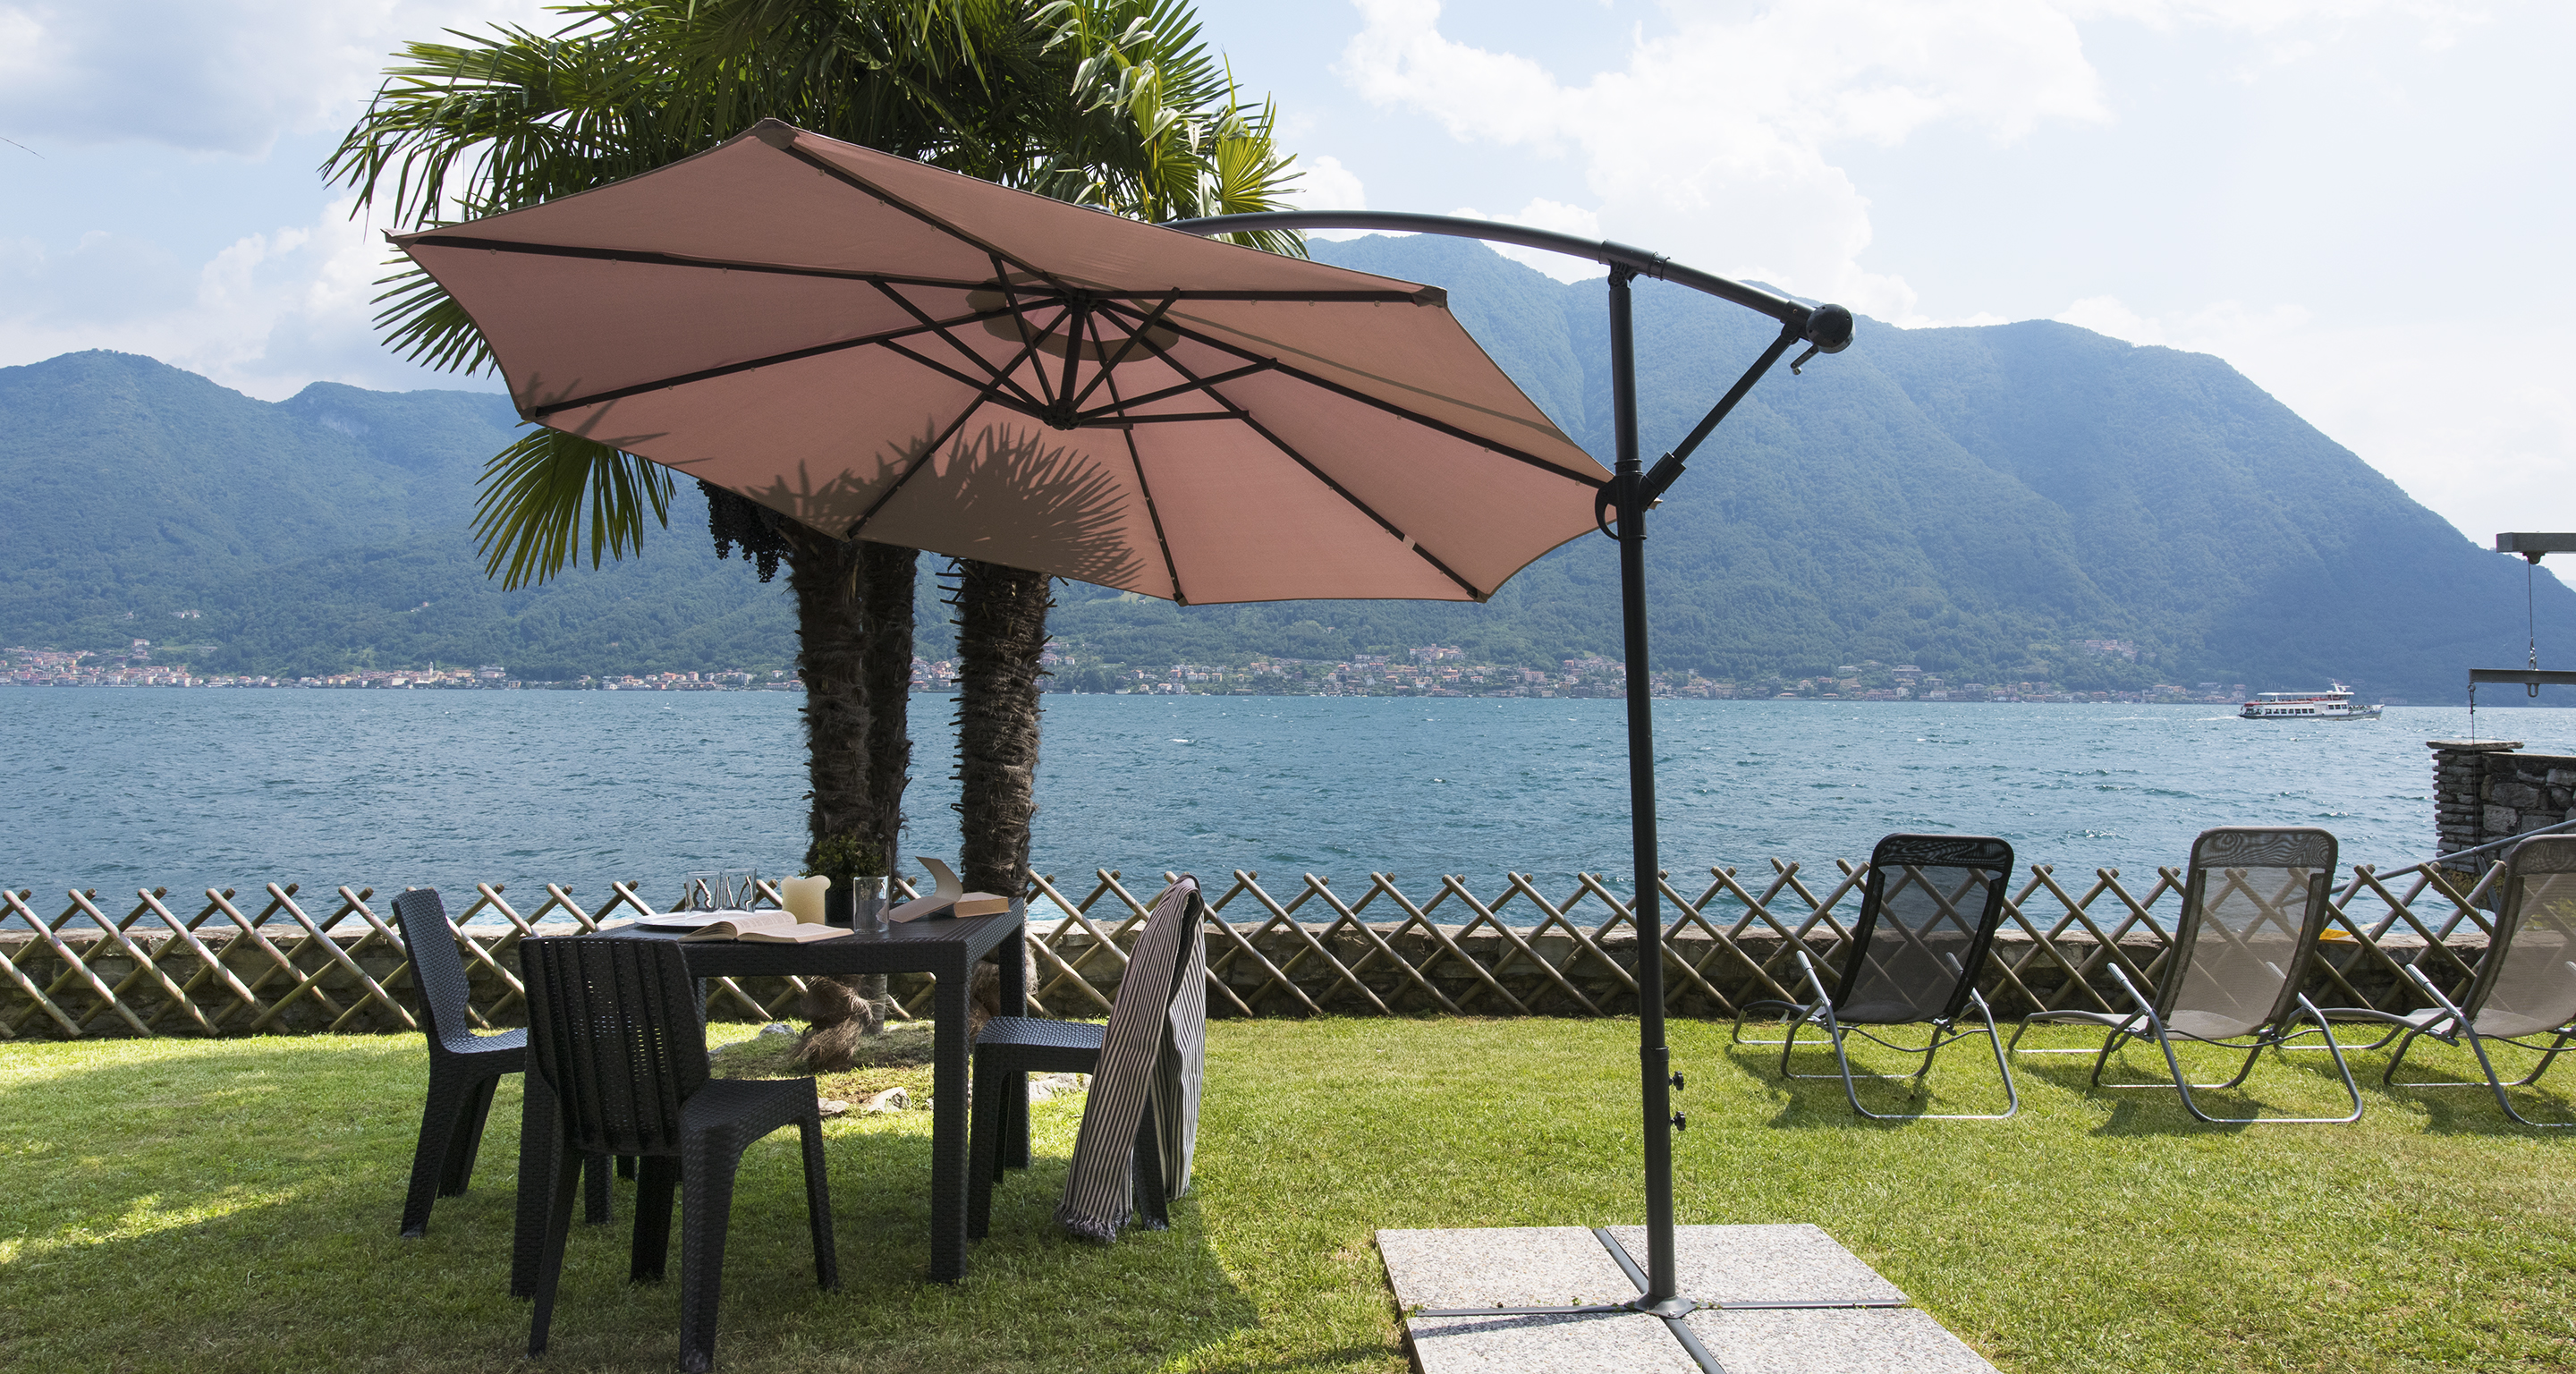 Apartment Hintown Villa Caterina on the Lake - PARKING photo 17989143